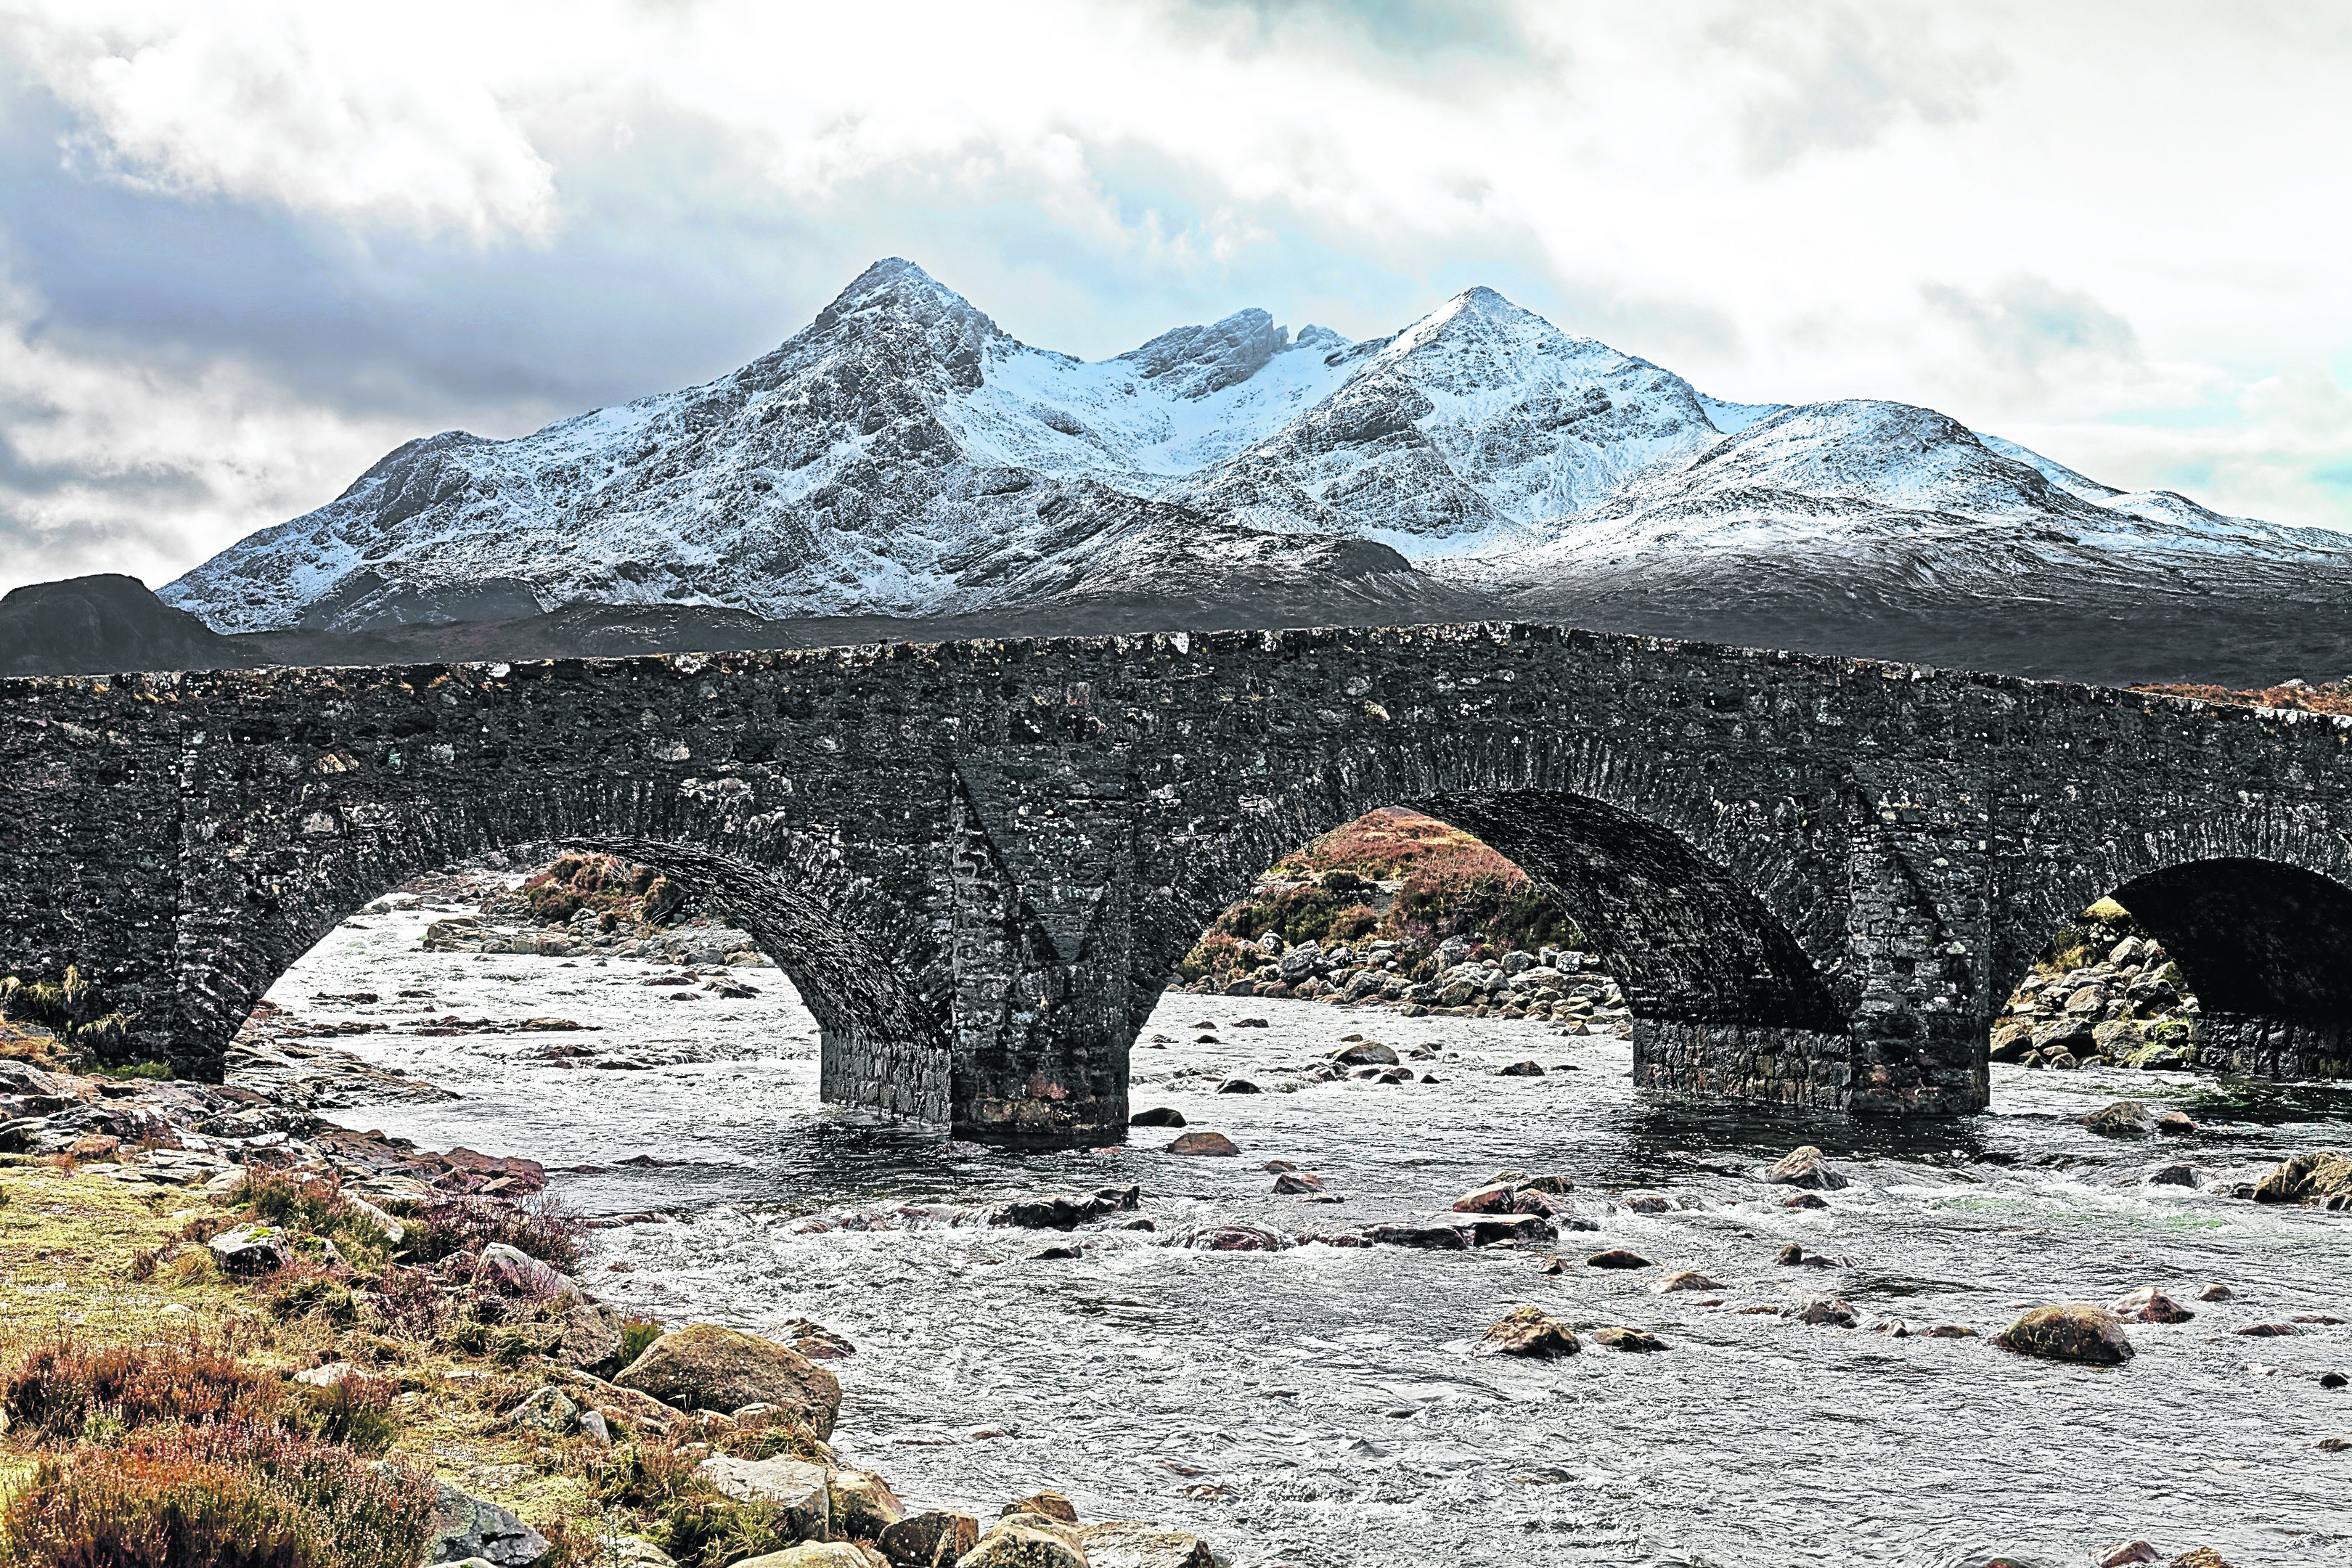 The Cuillin Ridge route is seven-and-a half miles long